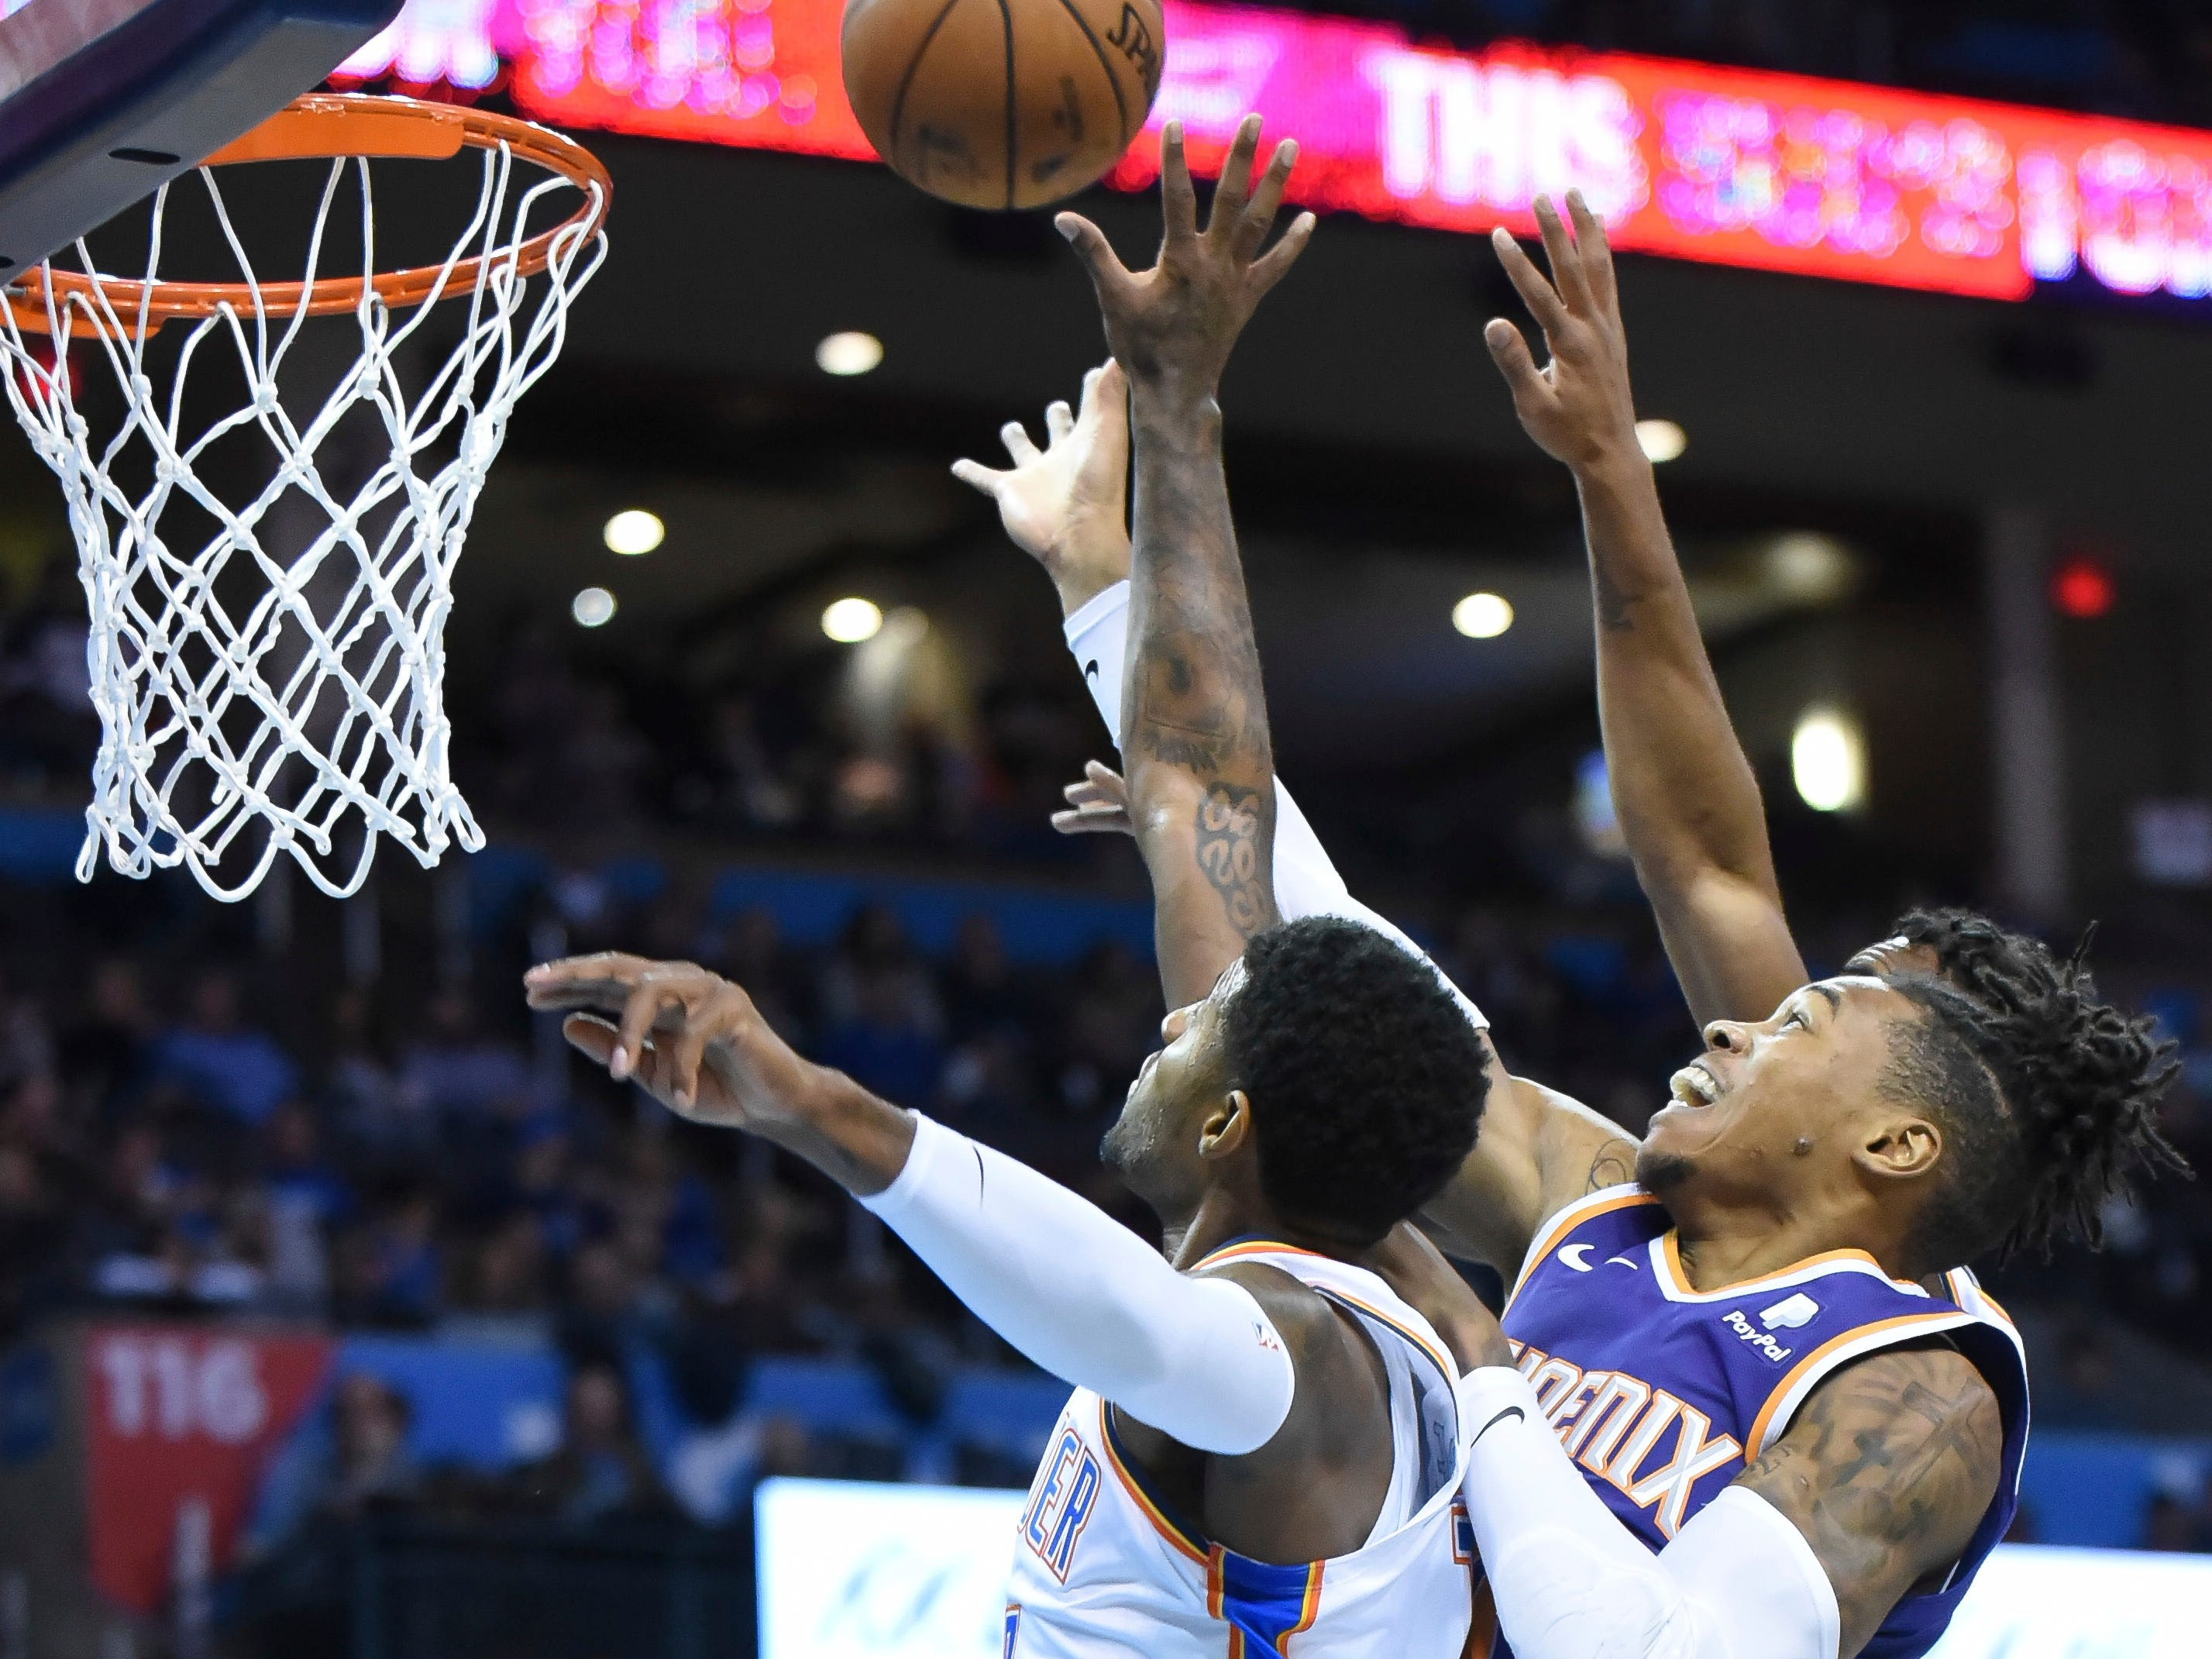 Oklahoma City Thunder forward Paul George, left, tries to beat Phoenix Suns forward Richaun Holmes, right to the rebound in the first half of an NBA basketball game in Oklahoma City, Monday, Nov. 12, 2018. (AP Photo/Kyle Phillips)